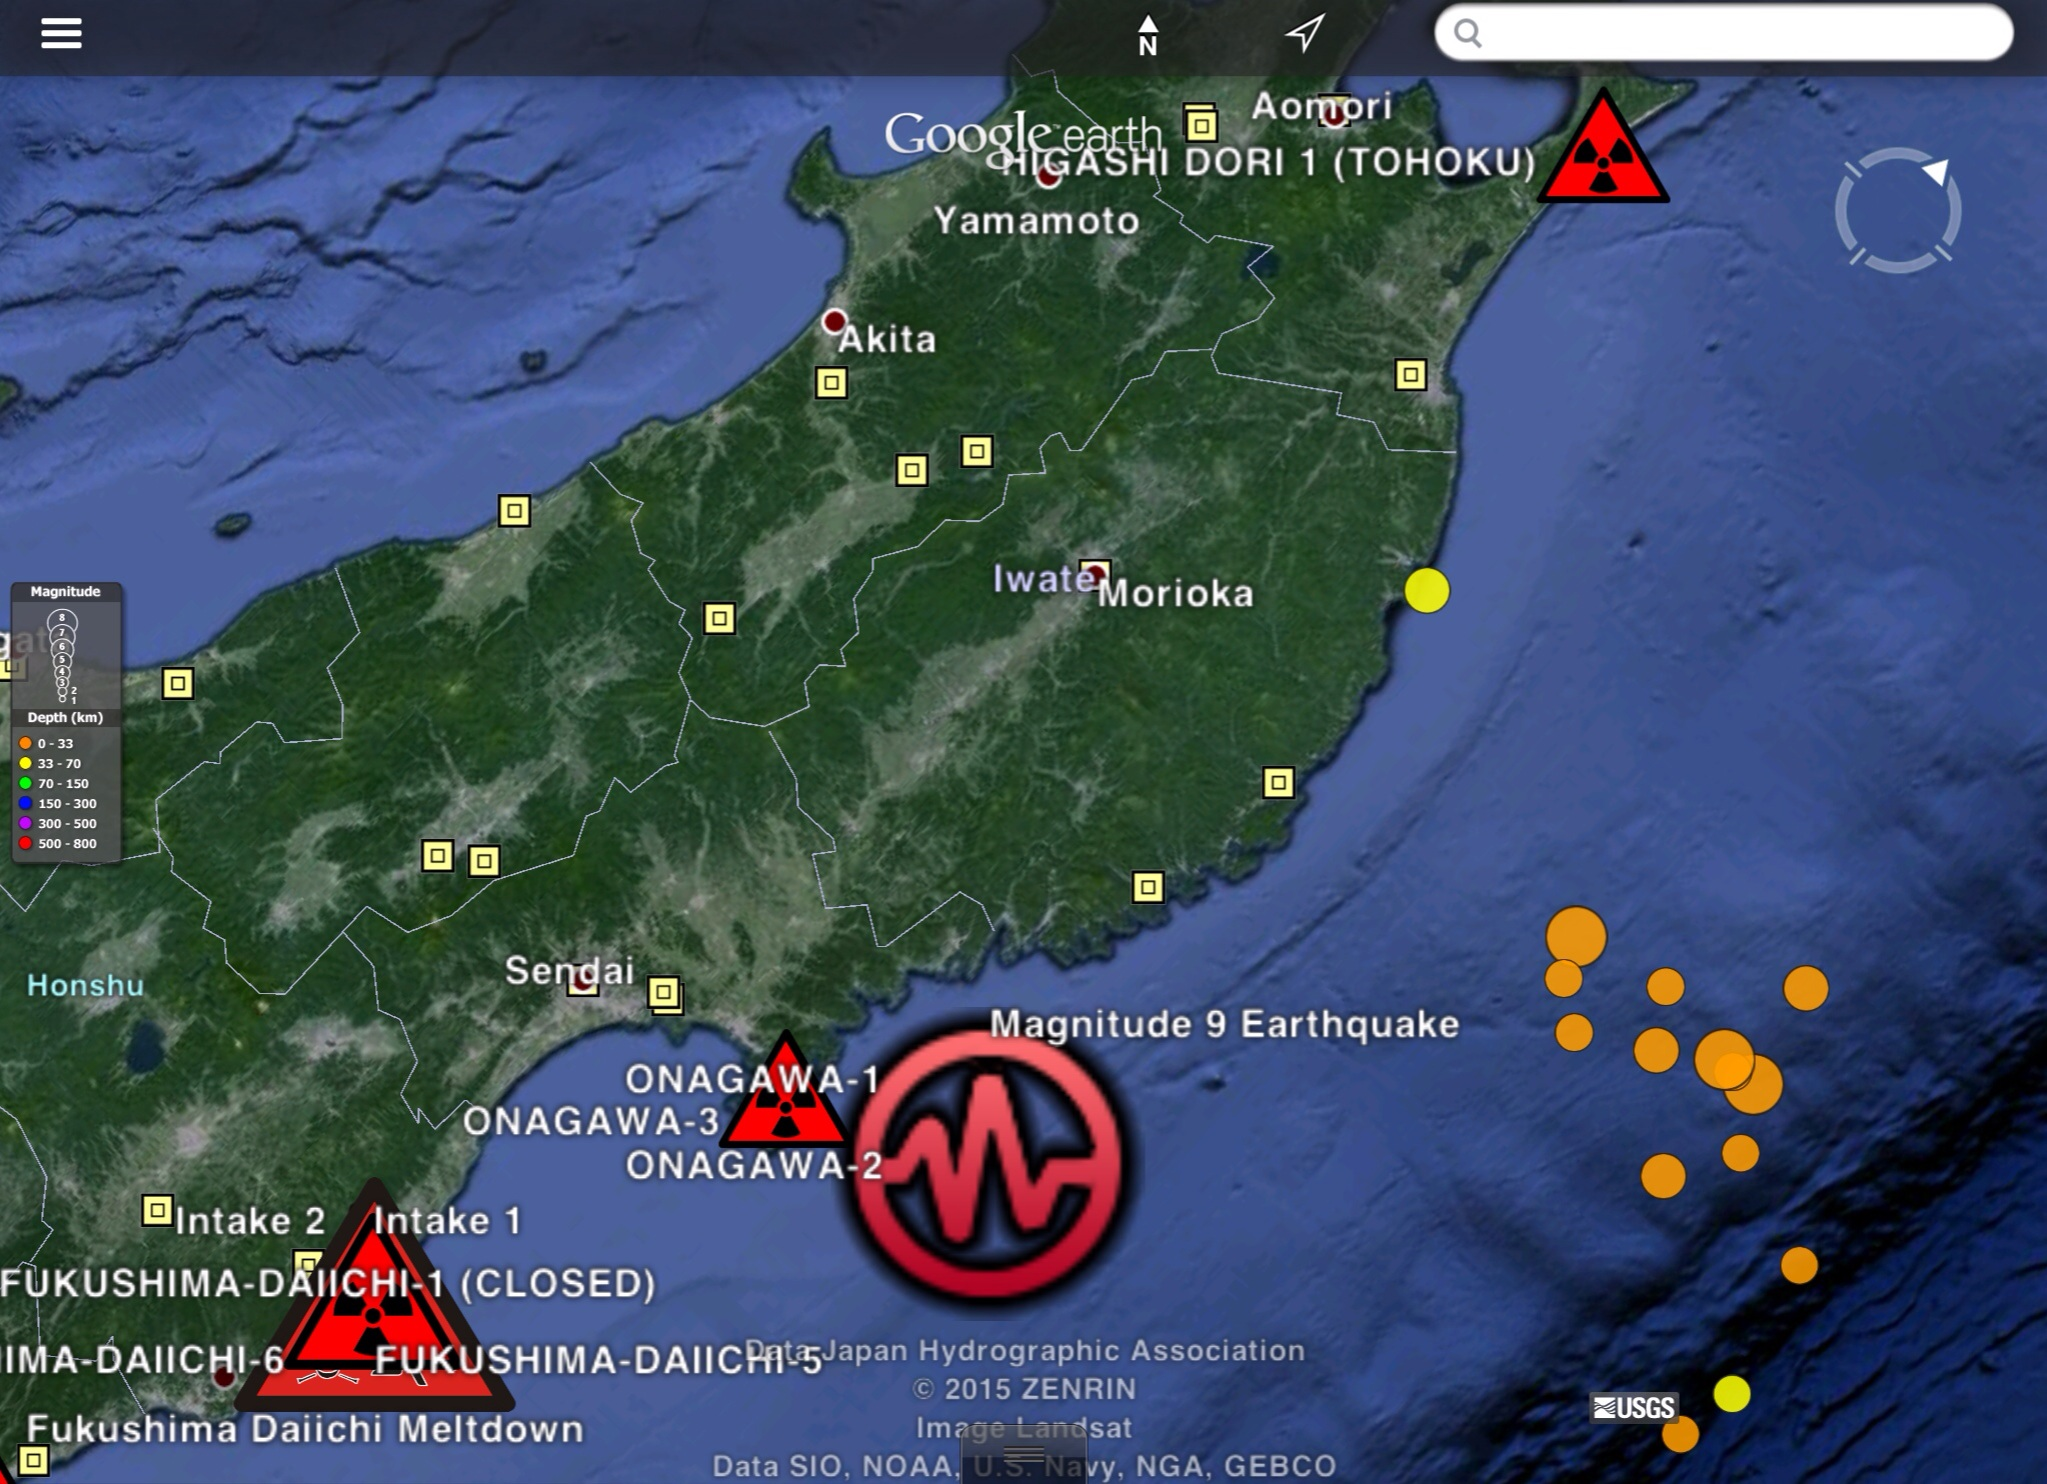 Why the recent japan earthquakes japan trench no place for nuclear nuclear reactor sites from climate viewer 3d kml files by jim lee cc by japan nuclear reactors plus recent large earthquakes gumiabroncs Image collections